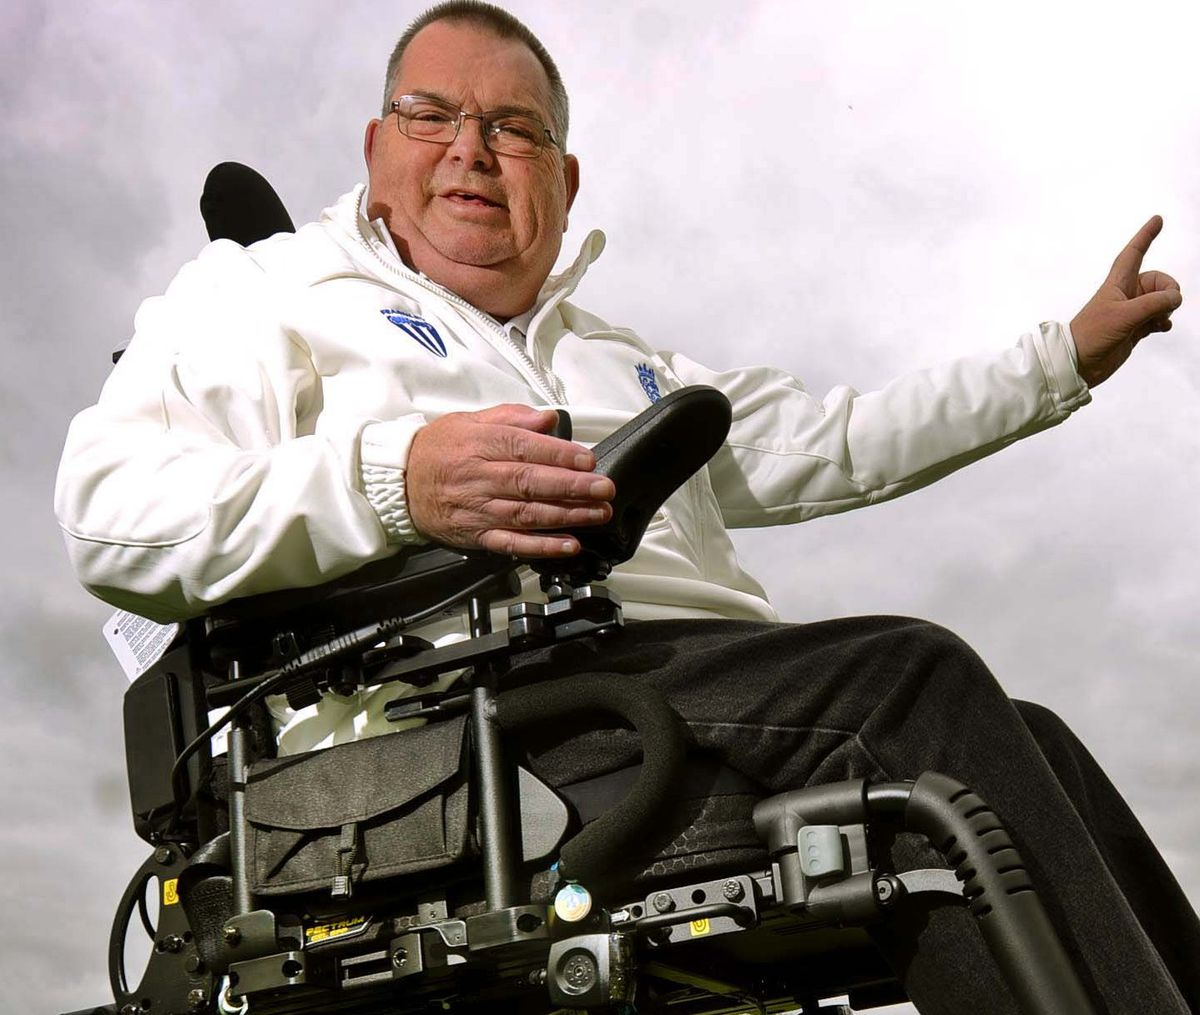 Shropshire cricket umpire John McIntear takes delivery of his unique electric wheelchair